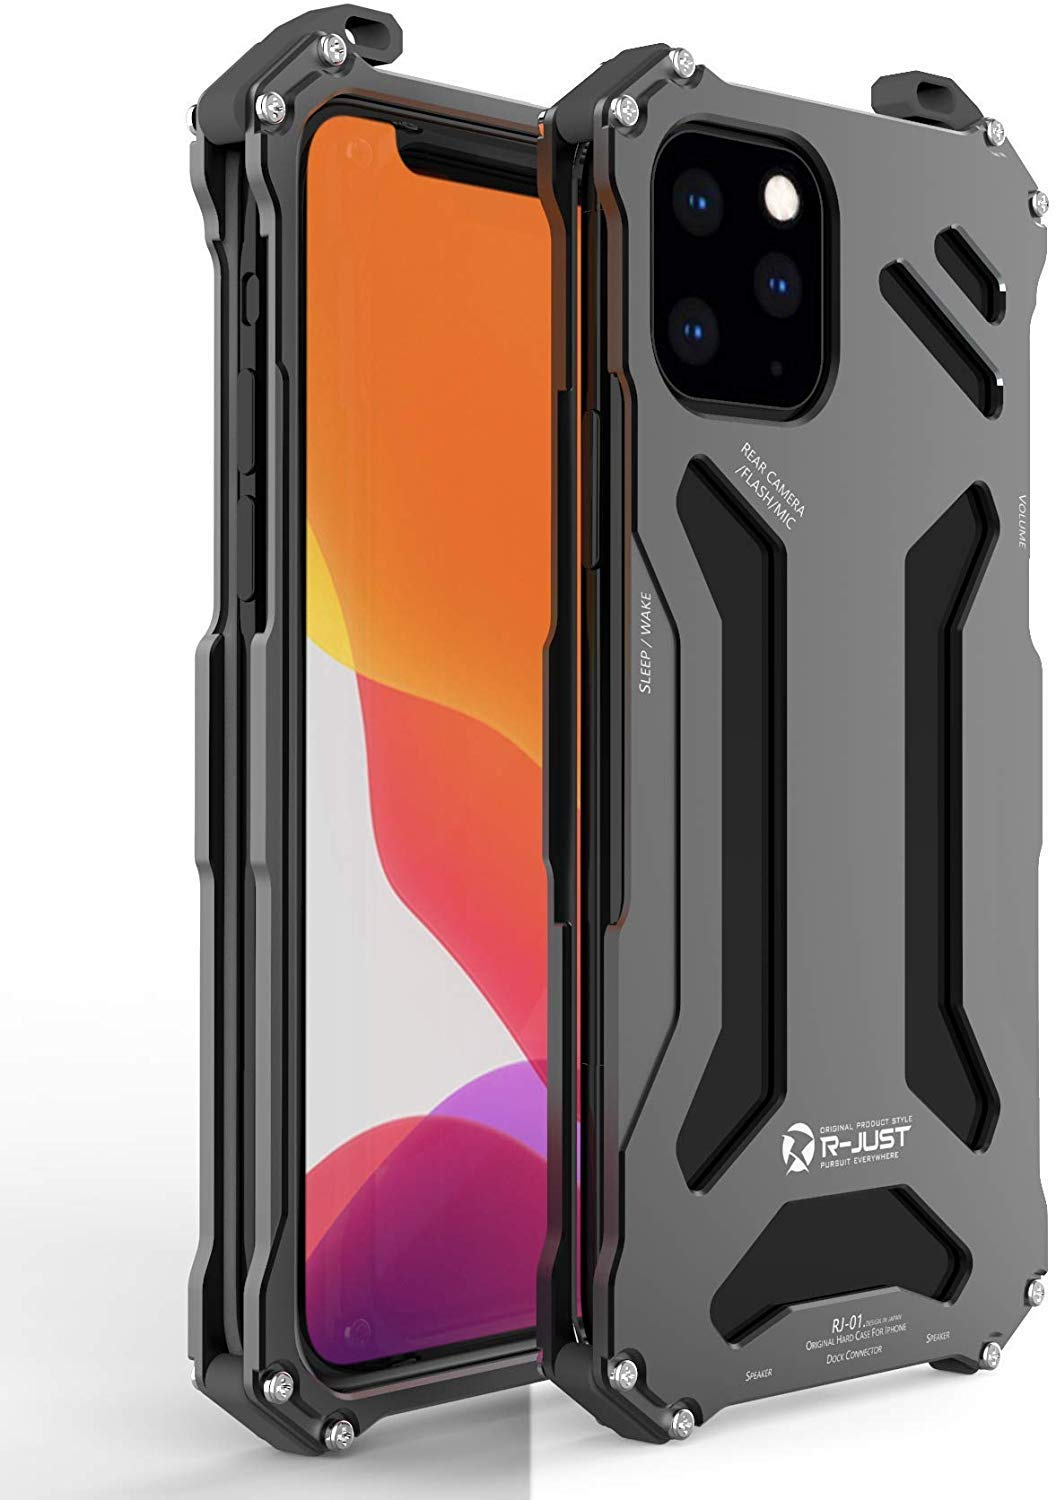 R JUST Shockproof Resistance Aluminum Protective